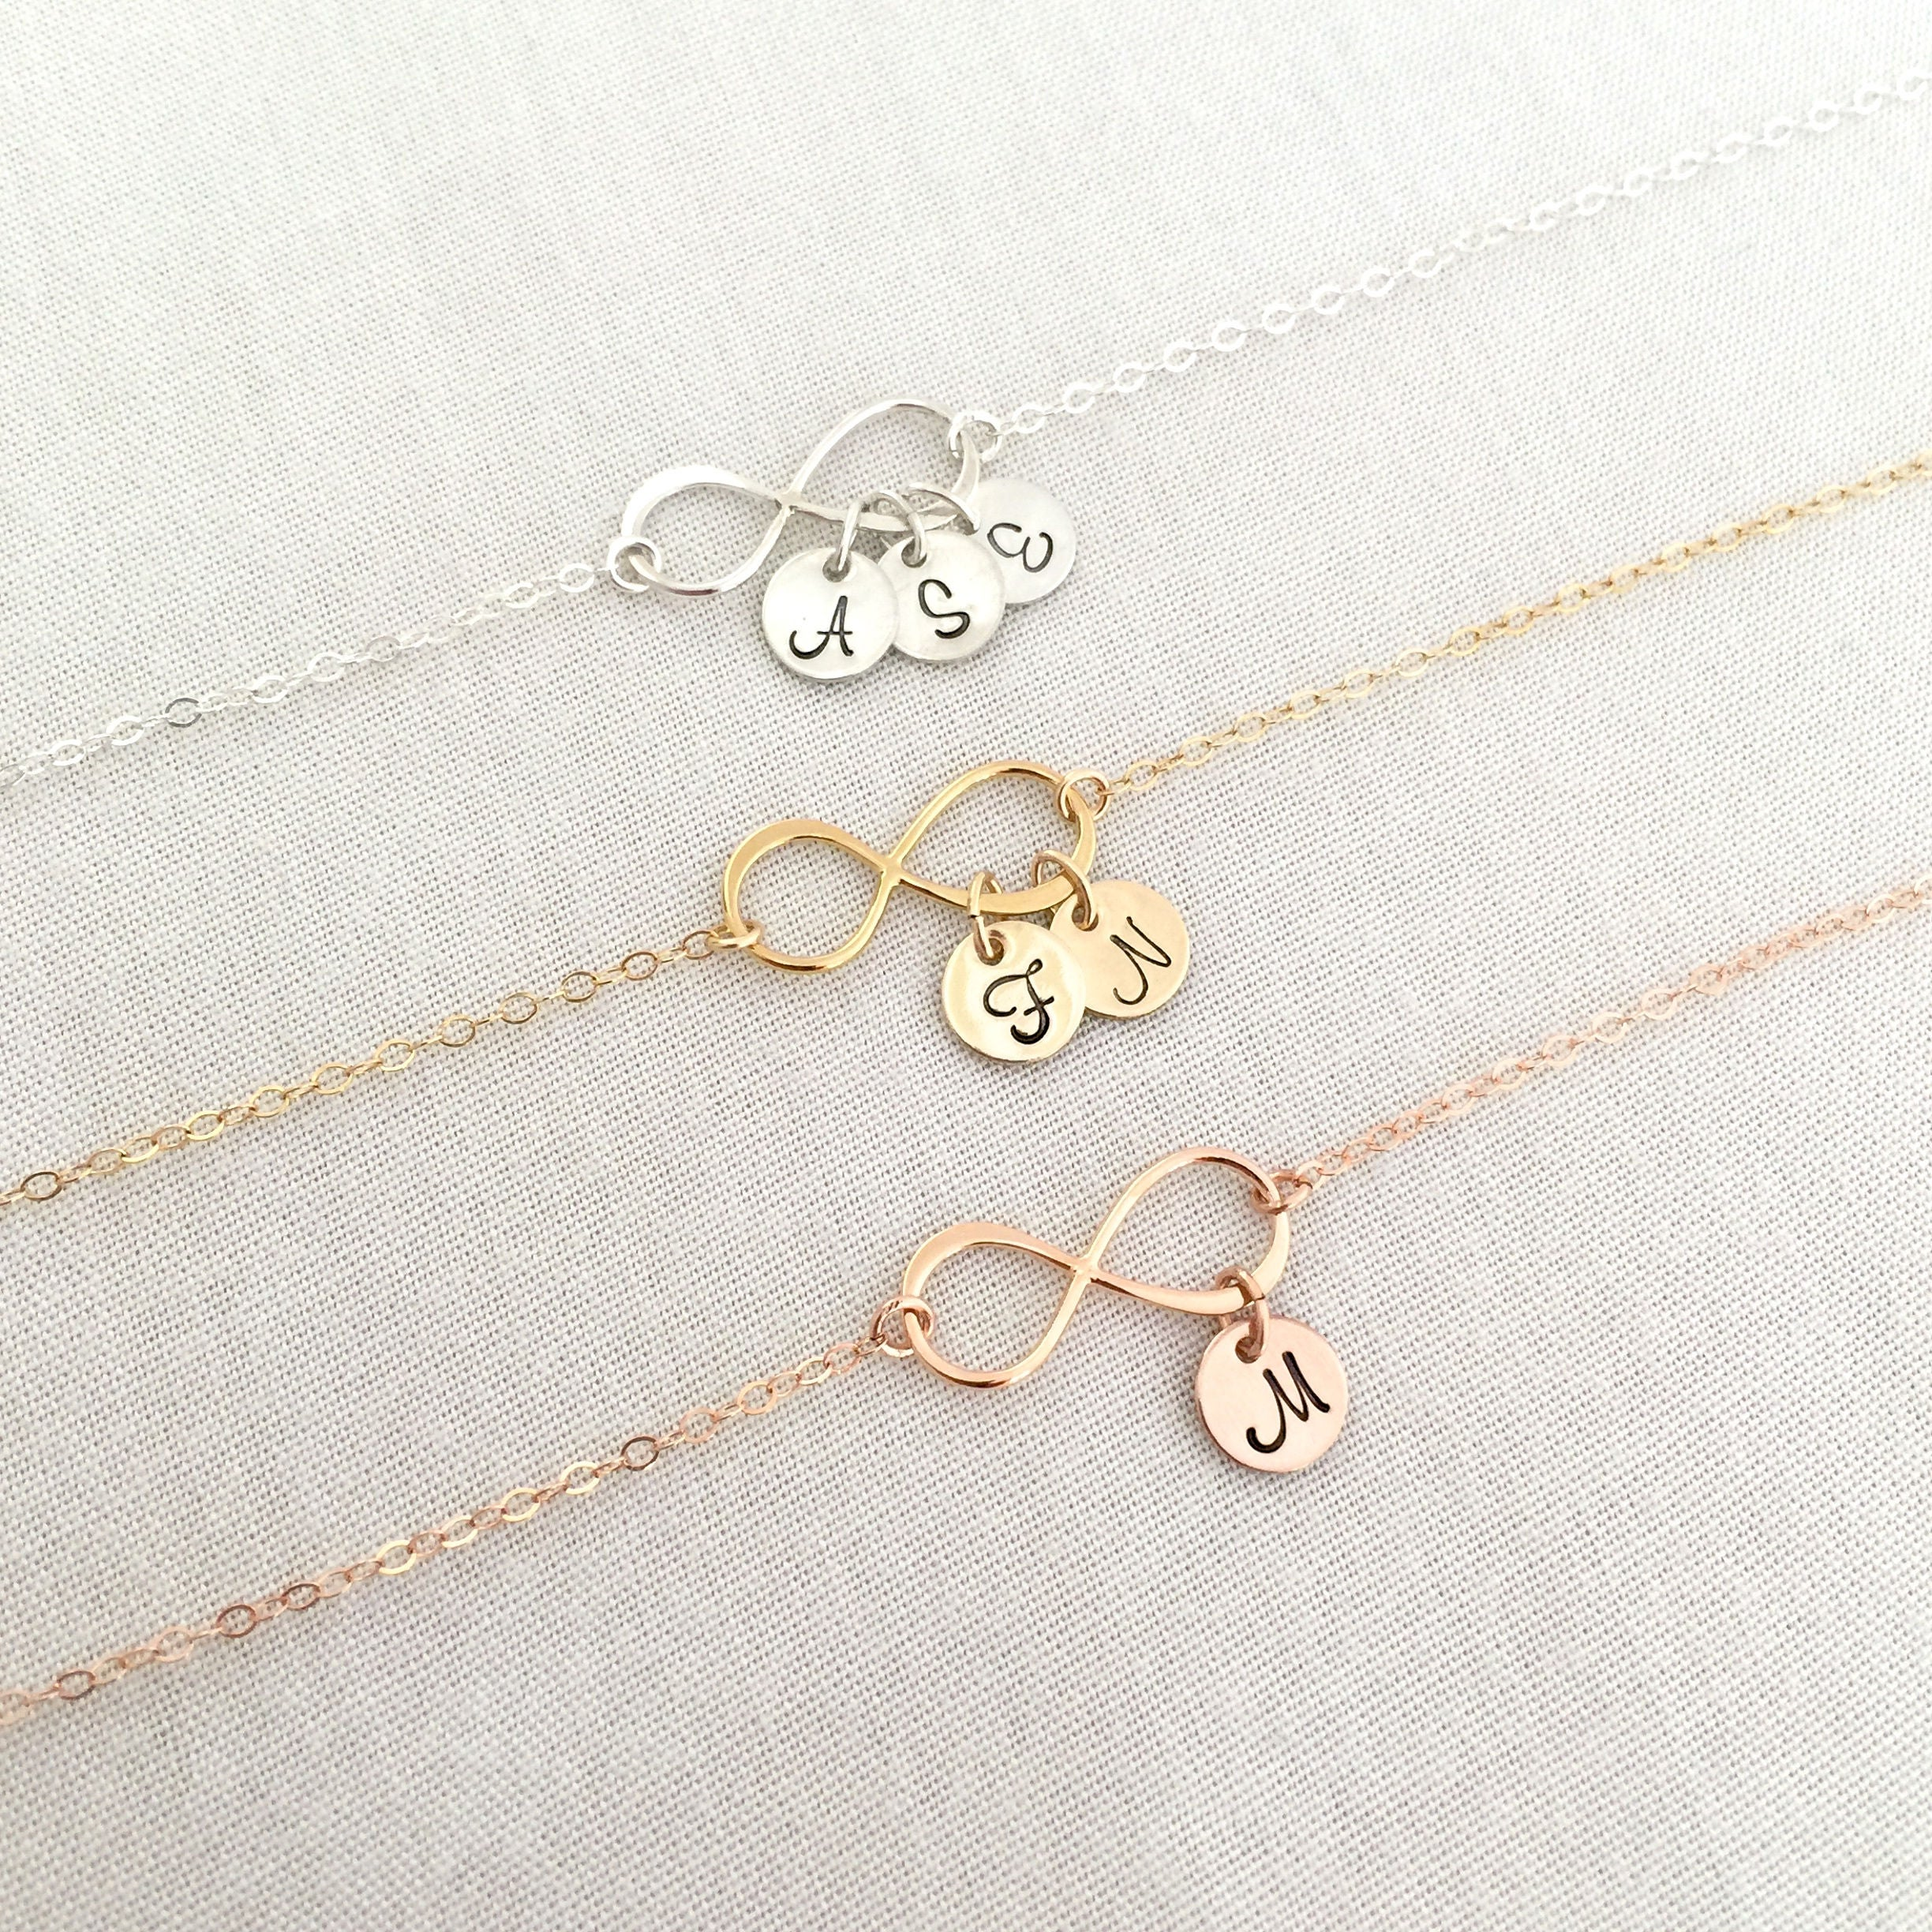 Personalized Infinity Bracelet, Bridesmaid Sister Mother Friendship Wedding Jewelry, Rose Gold